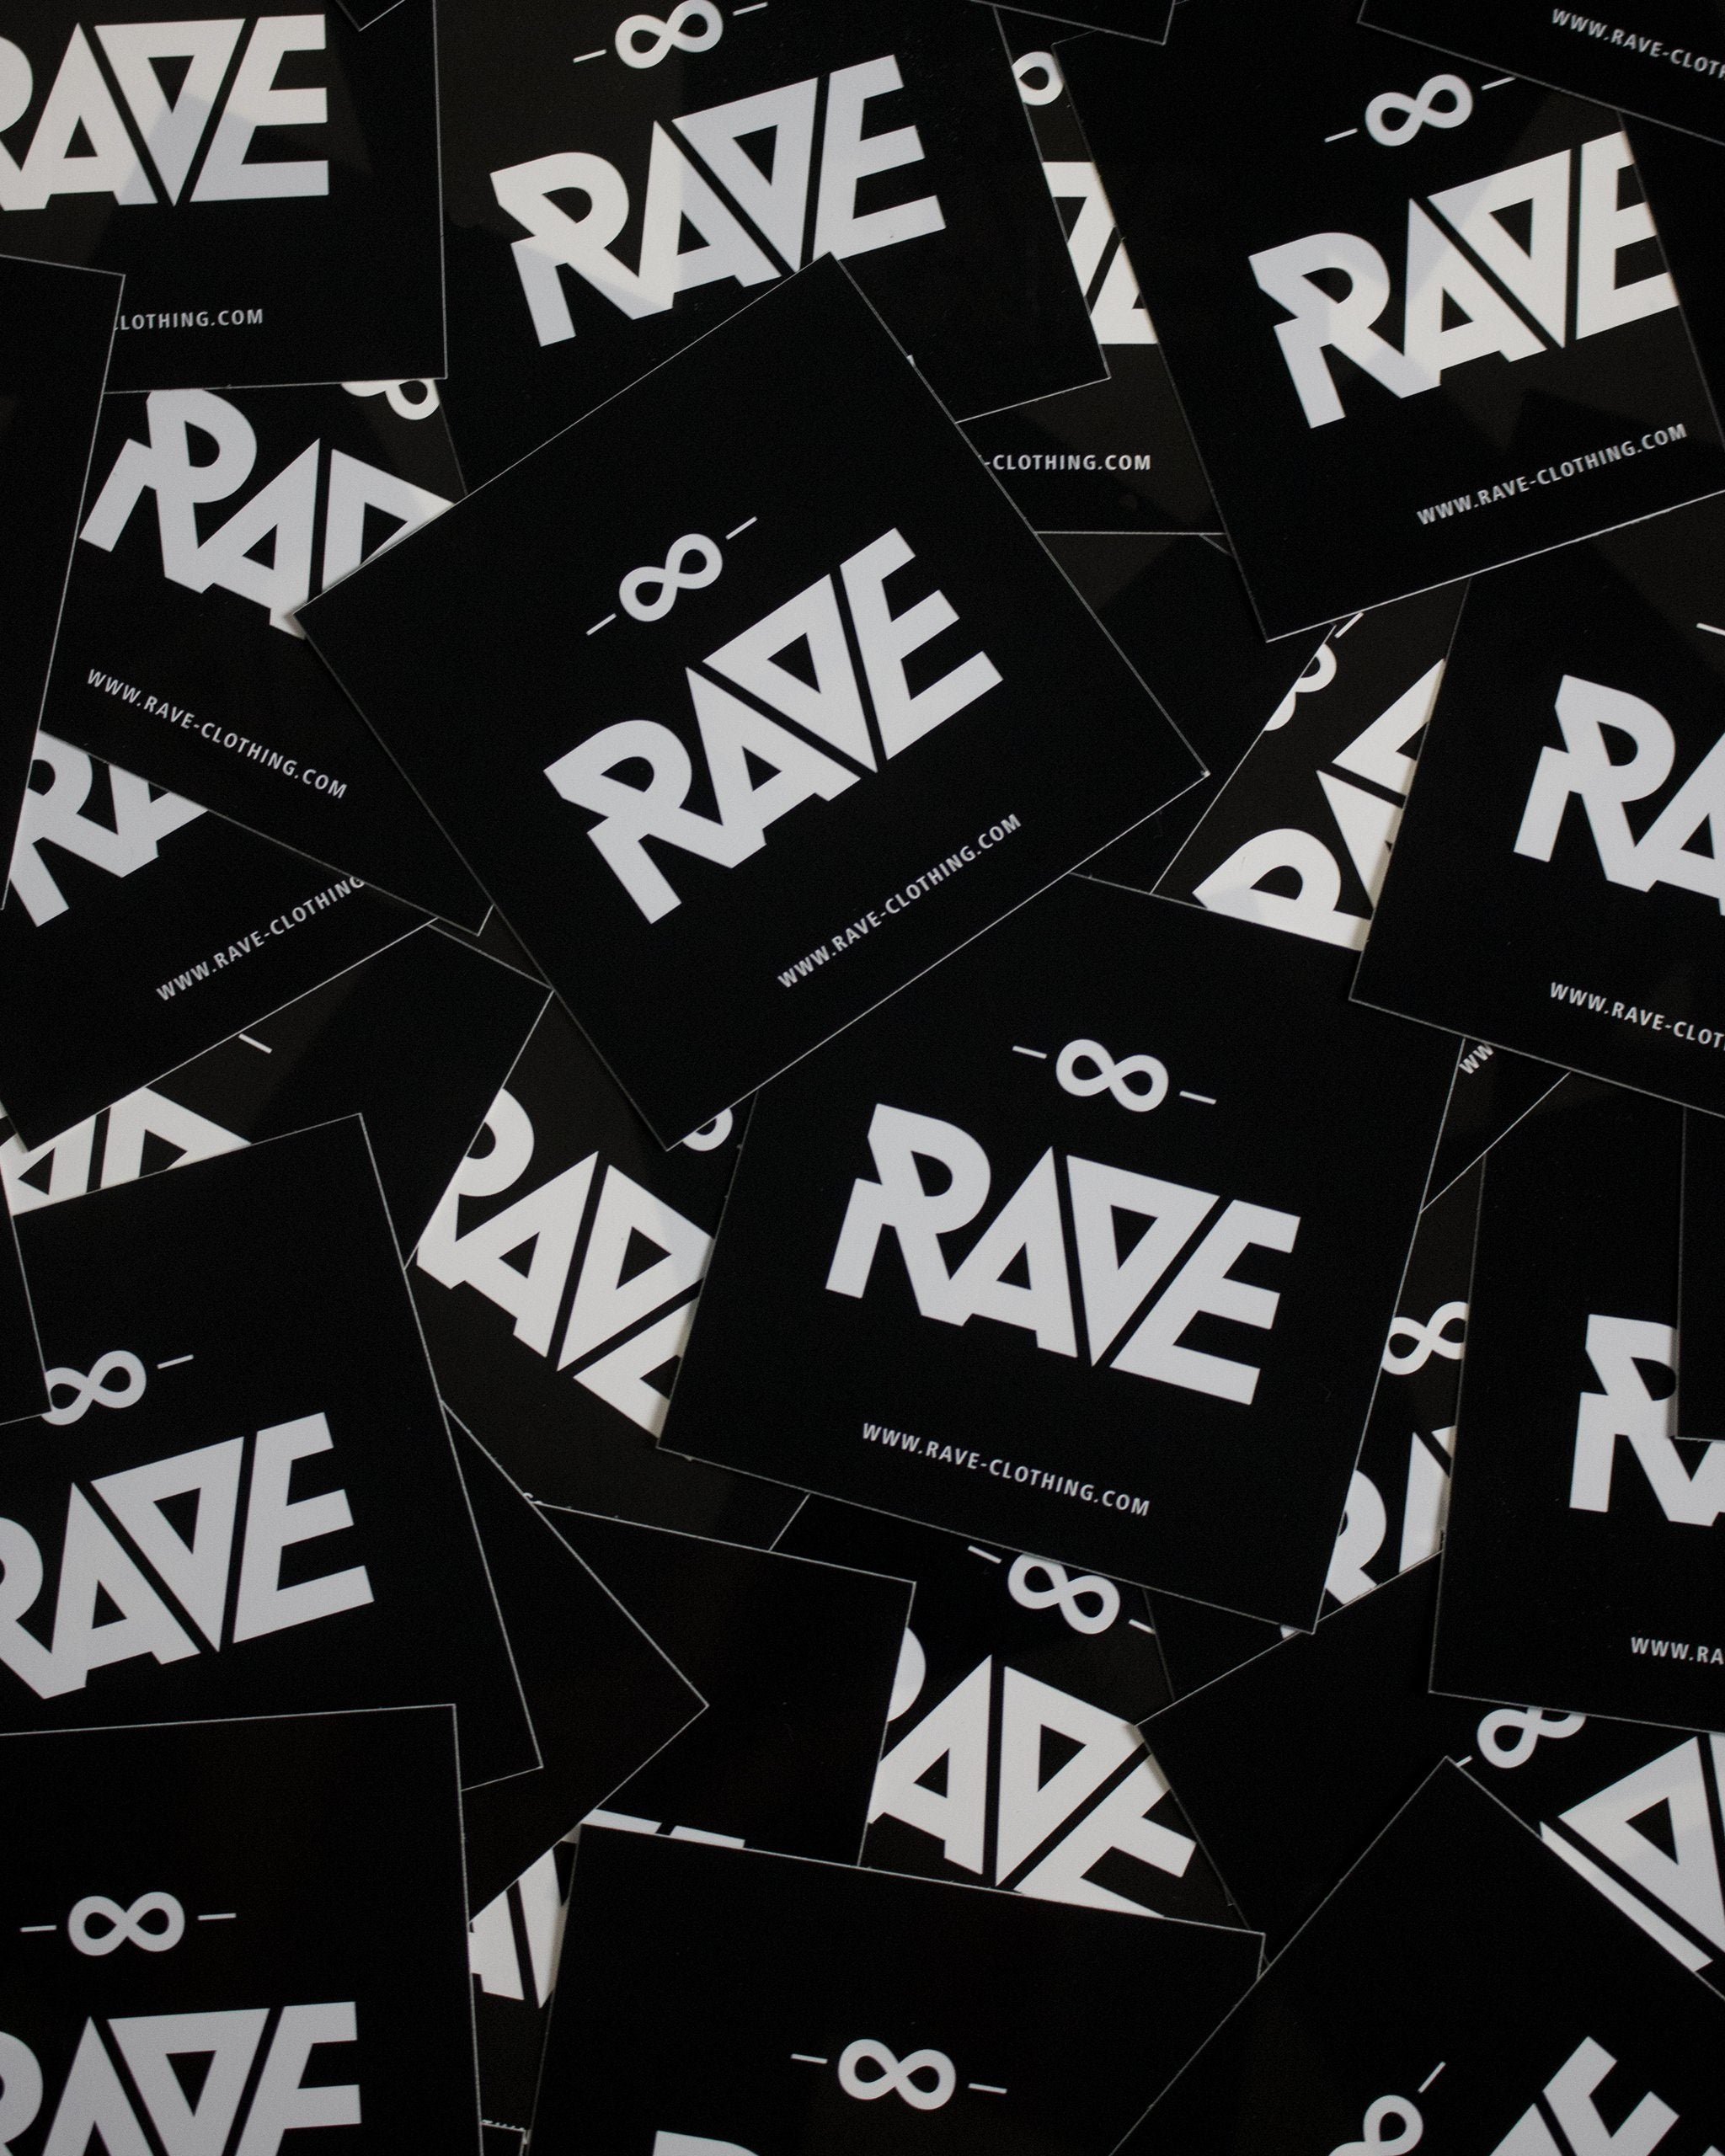 RAVE Clothing Sticker by RAVE Clothing